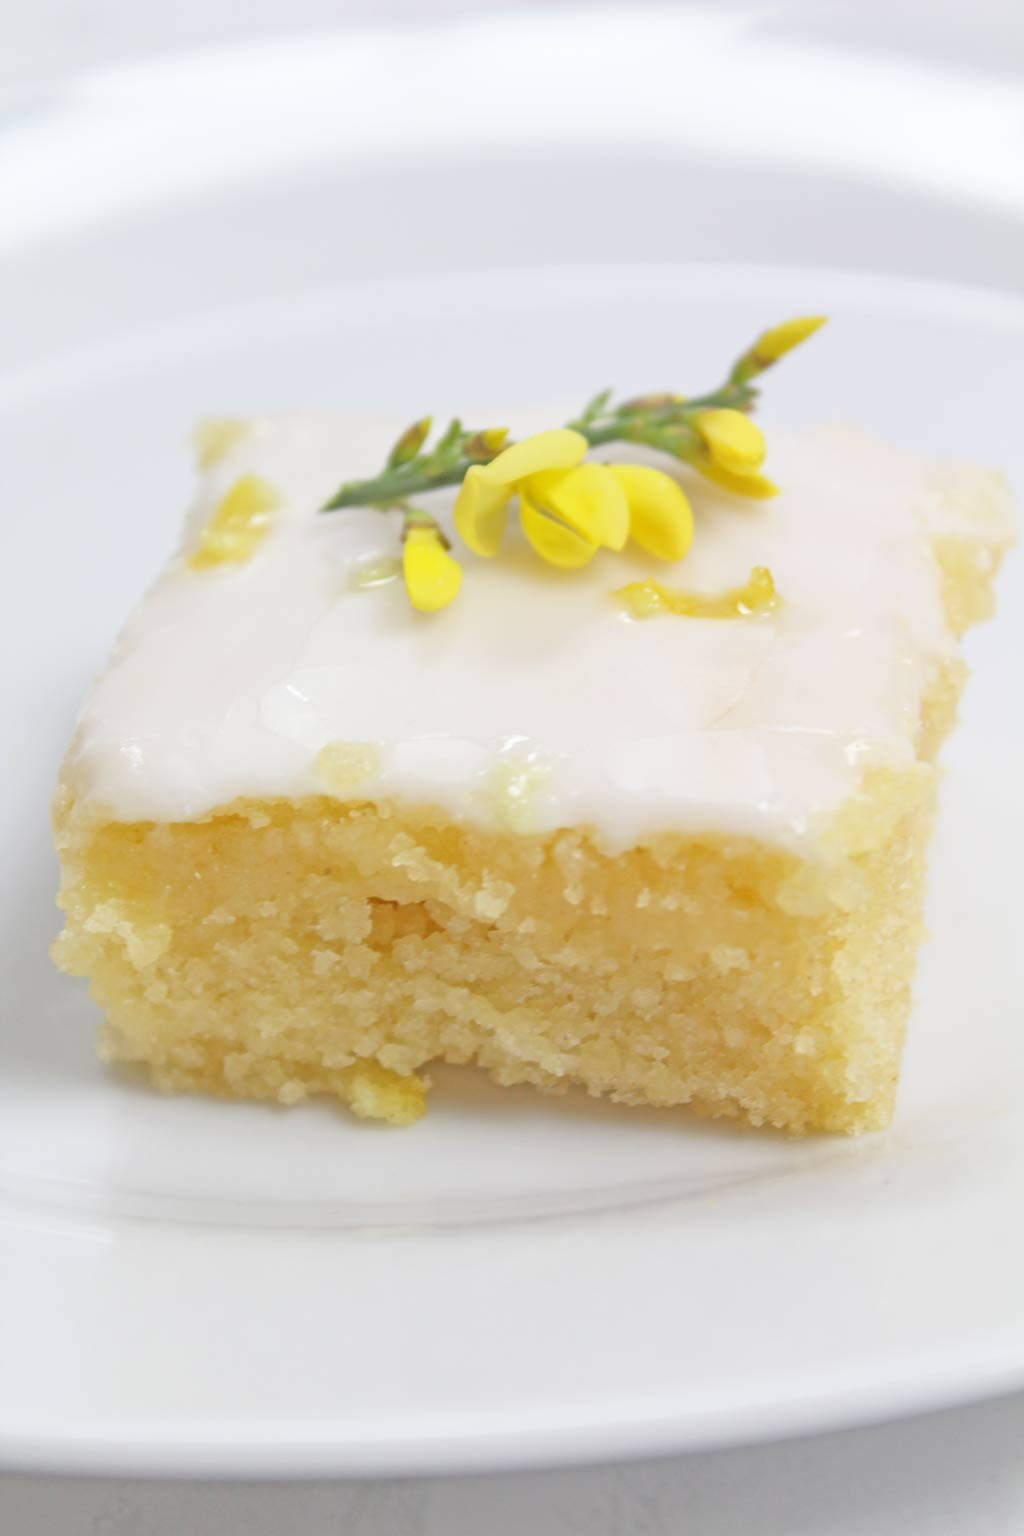 A square slice of cake with a yellow flower on top